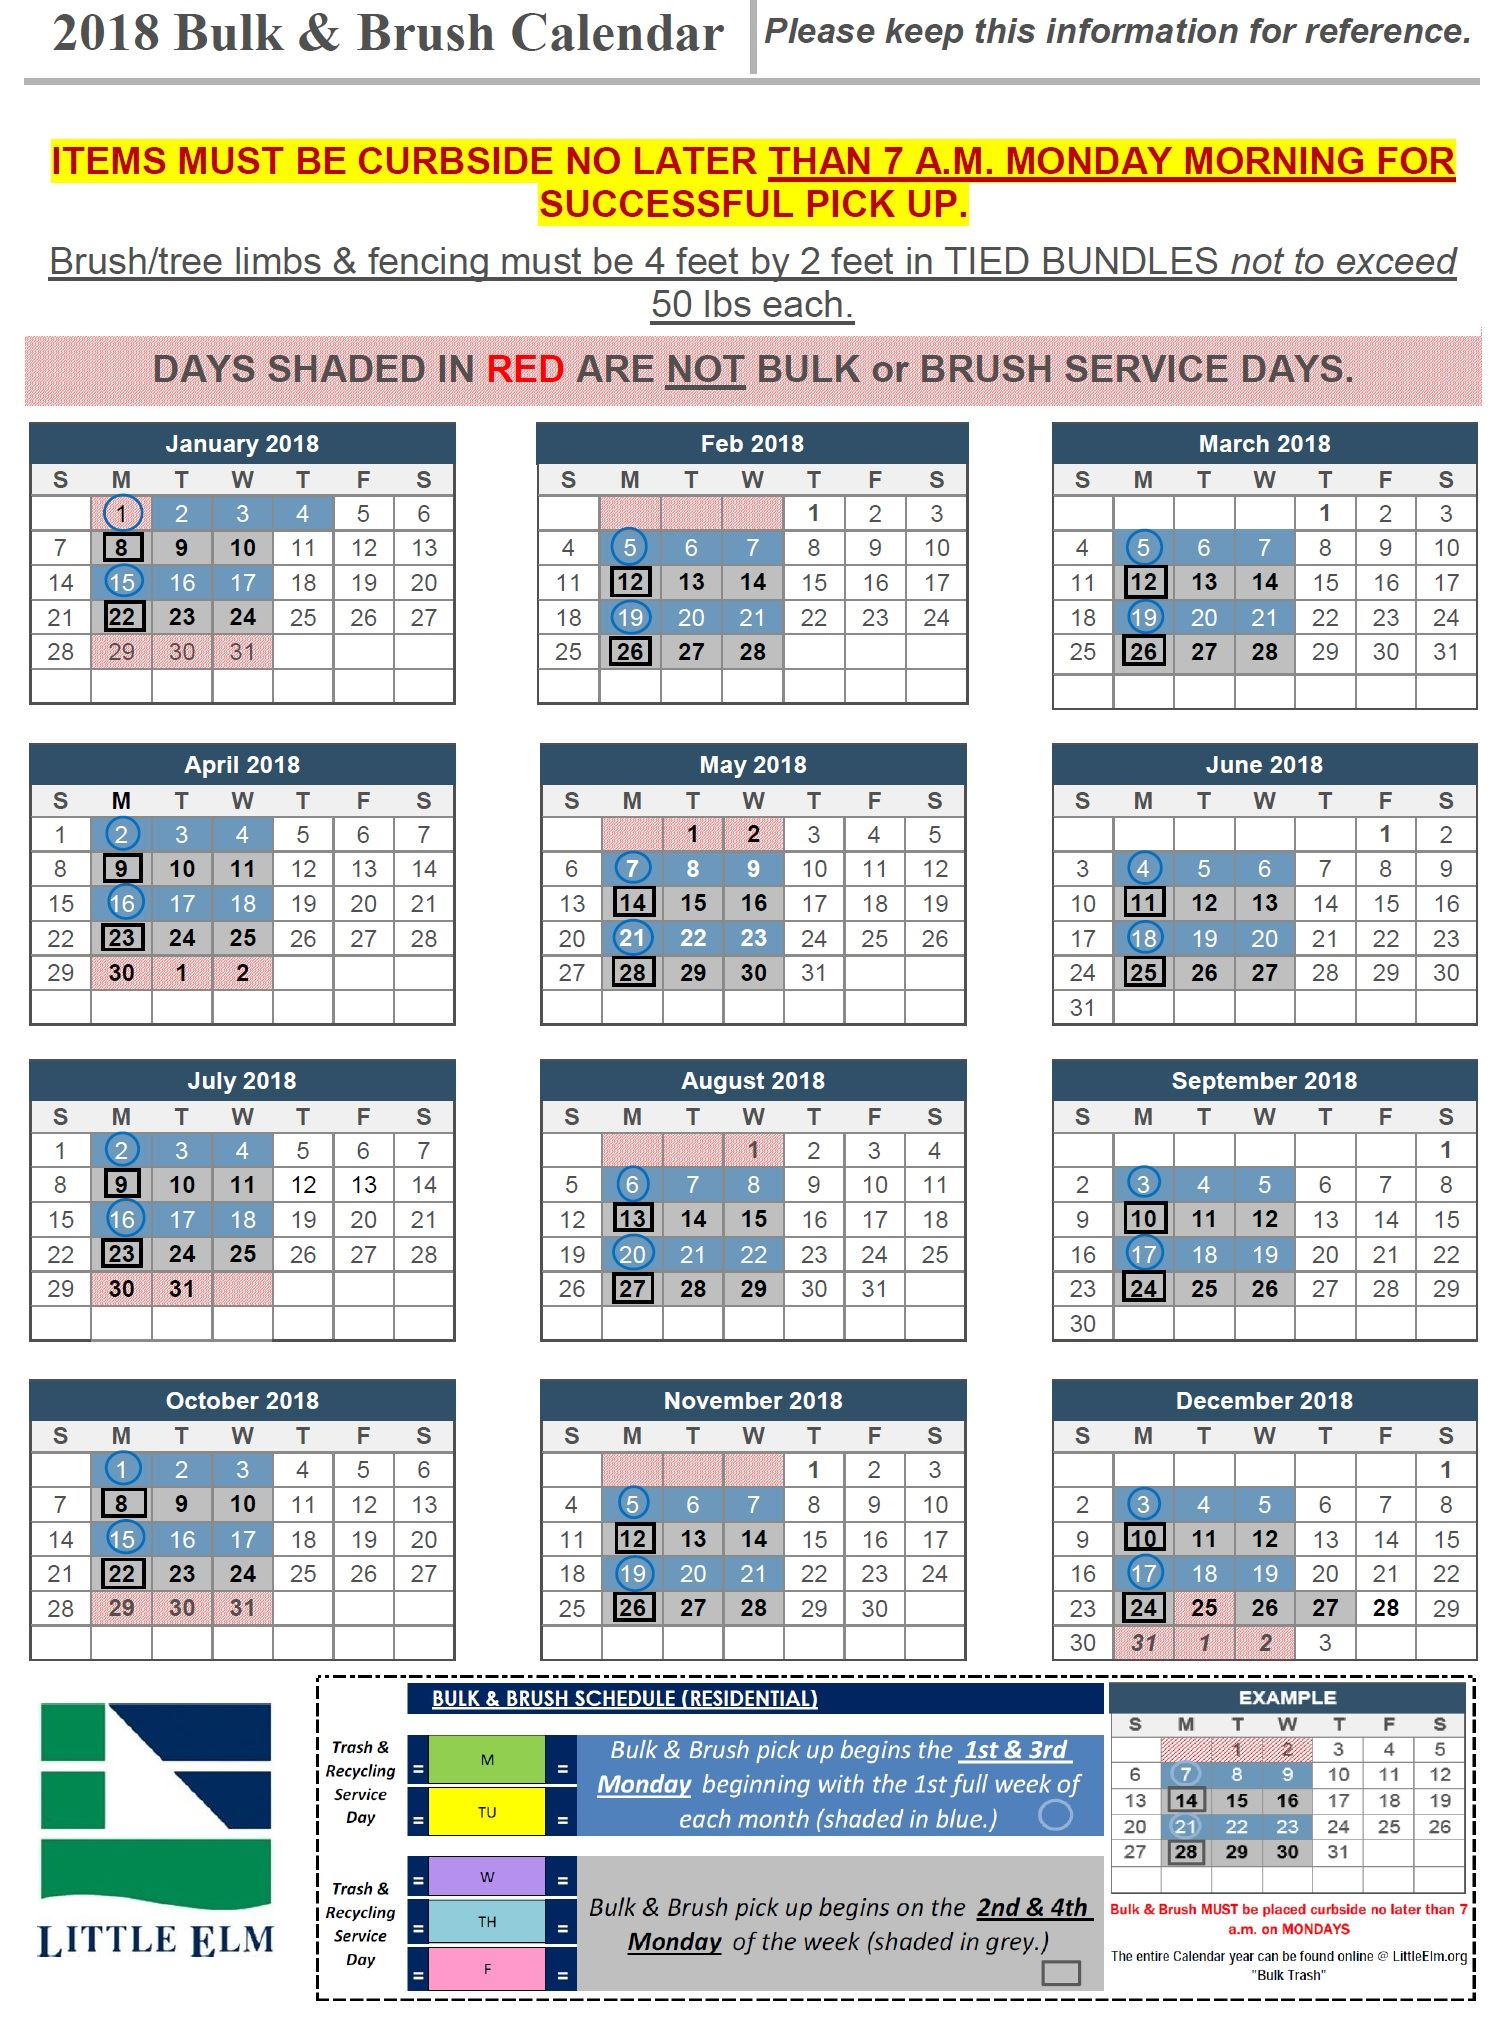 Austin Recycling Schedule 2019 Bulky Item Pick Up Schedule | Examples and Forms